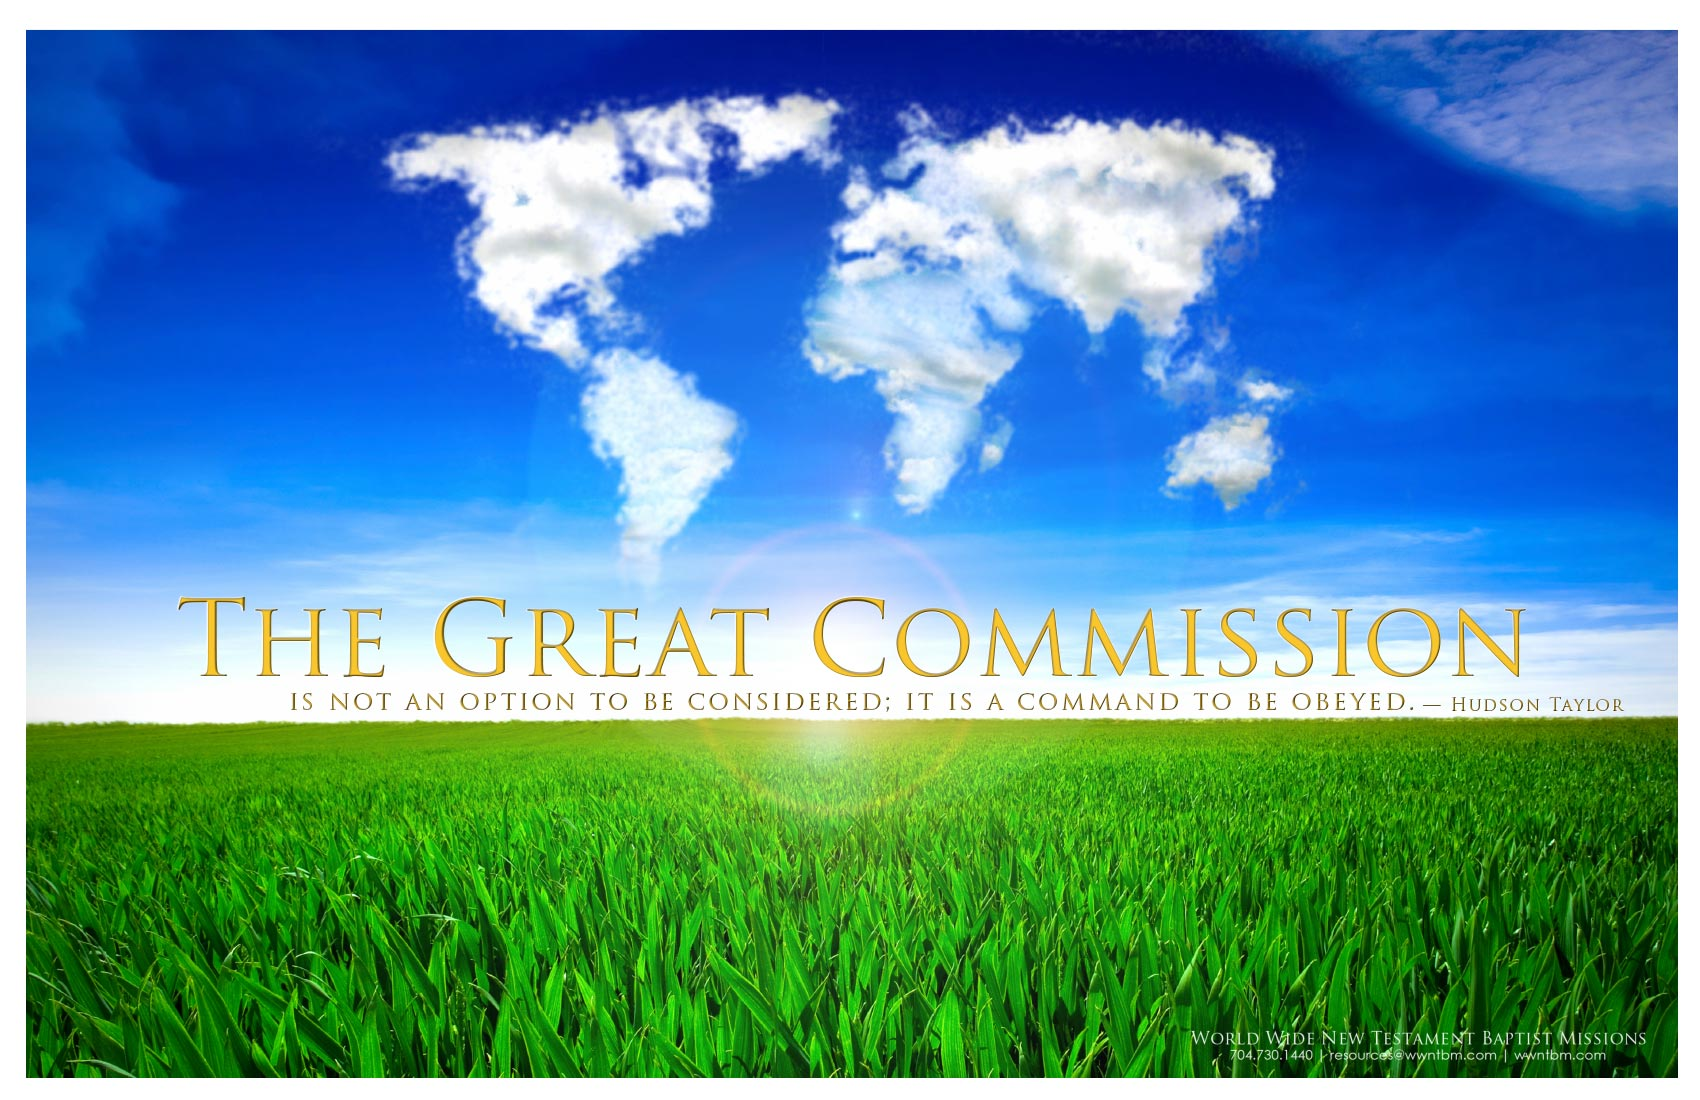 The Great Commission poster